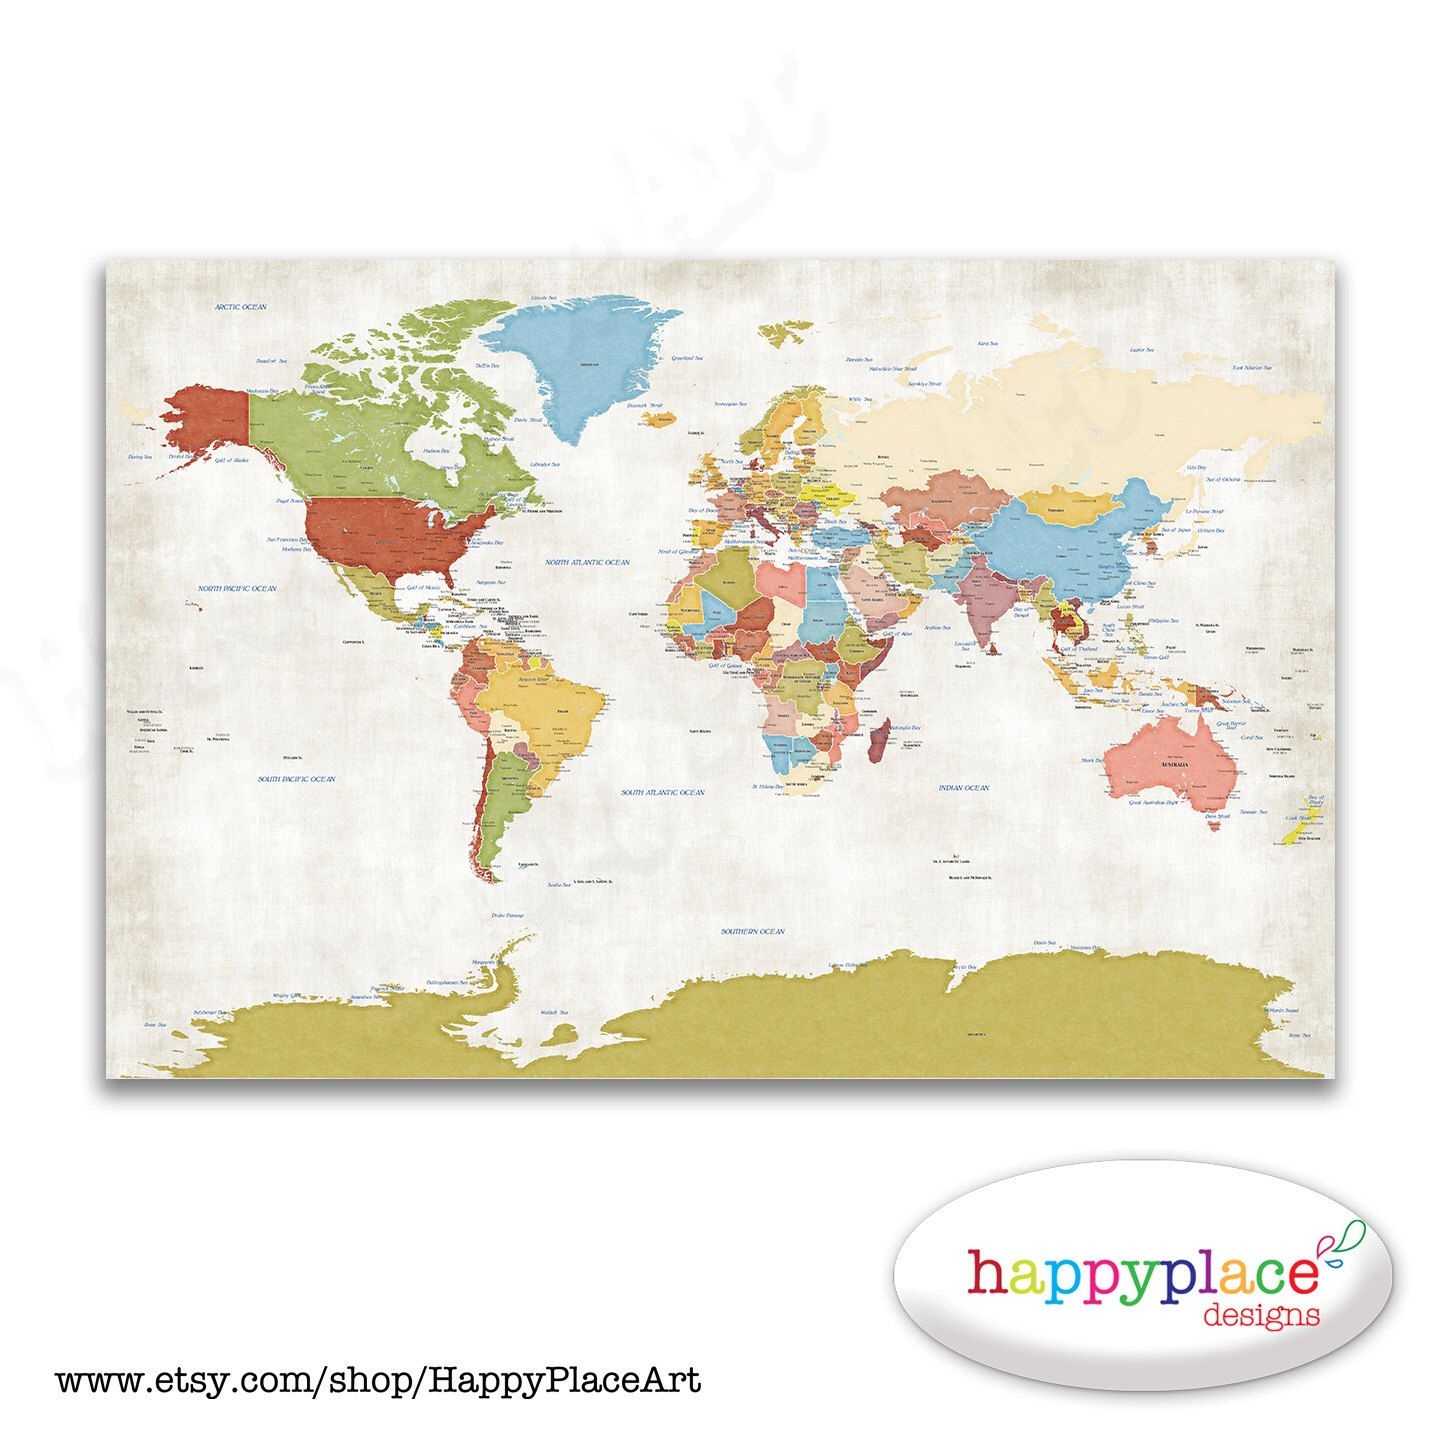 Large political map detailed map vintage world map with labels large political vintage style world map with printed texture country borders and capital cities gumiabroncs Image collections